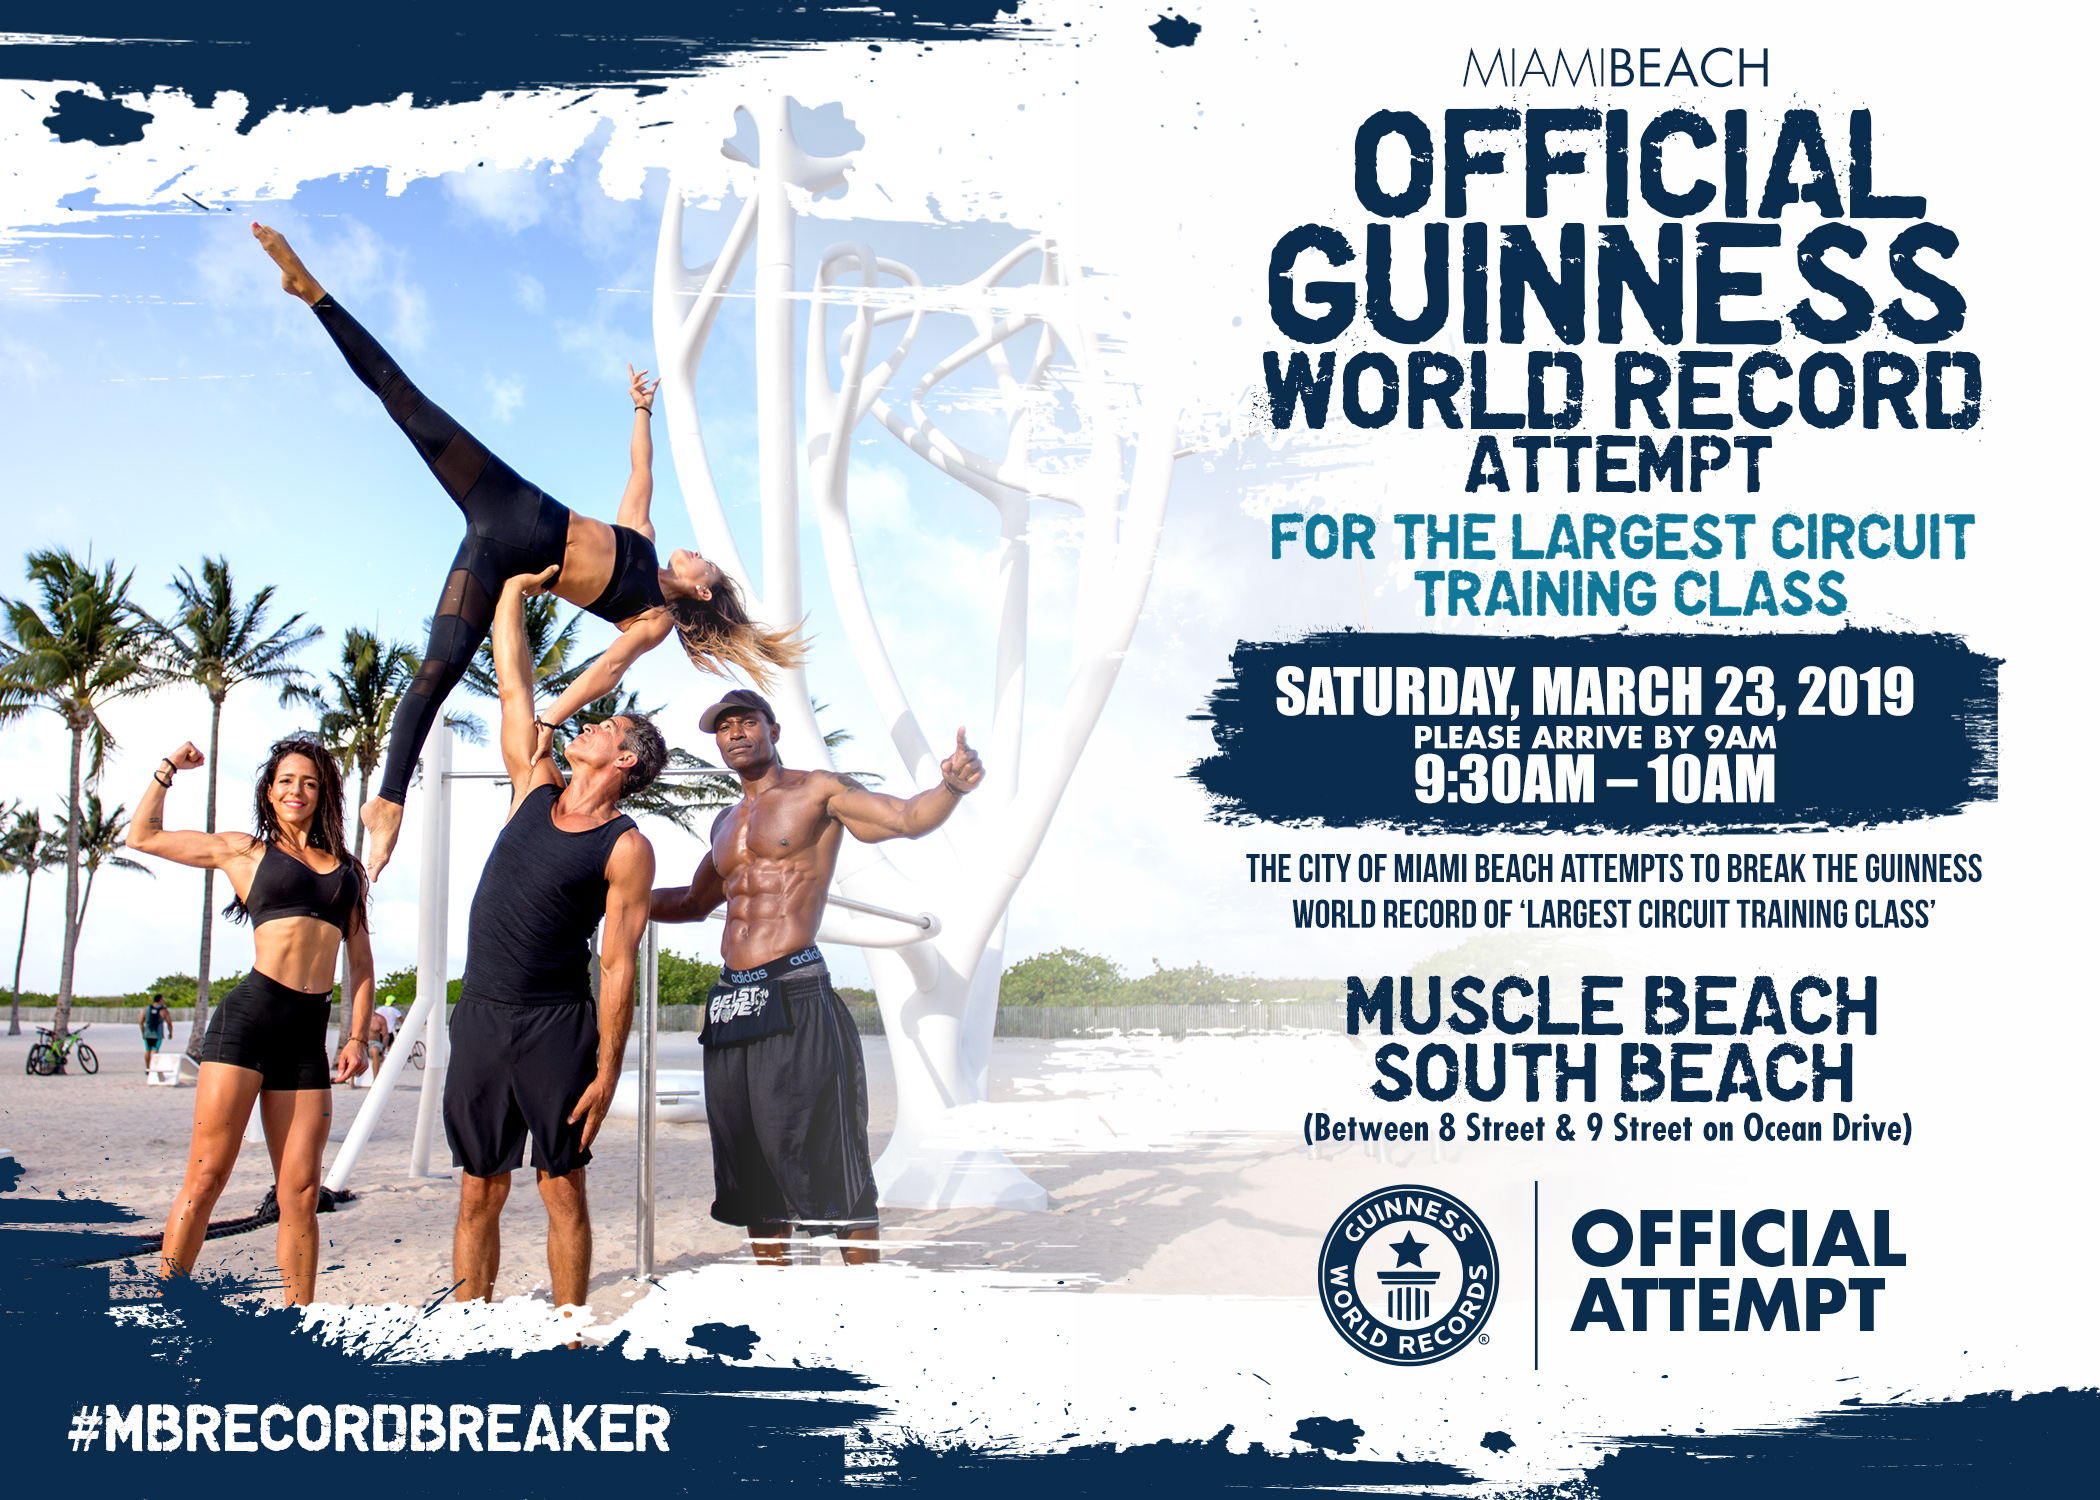 City of Miami Beach Attempts Guinness World Record!